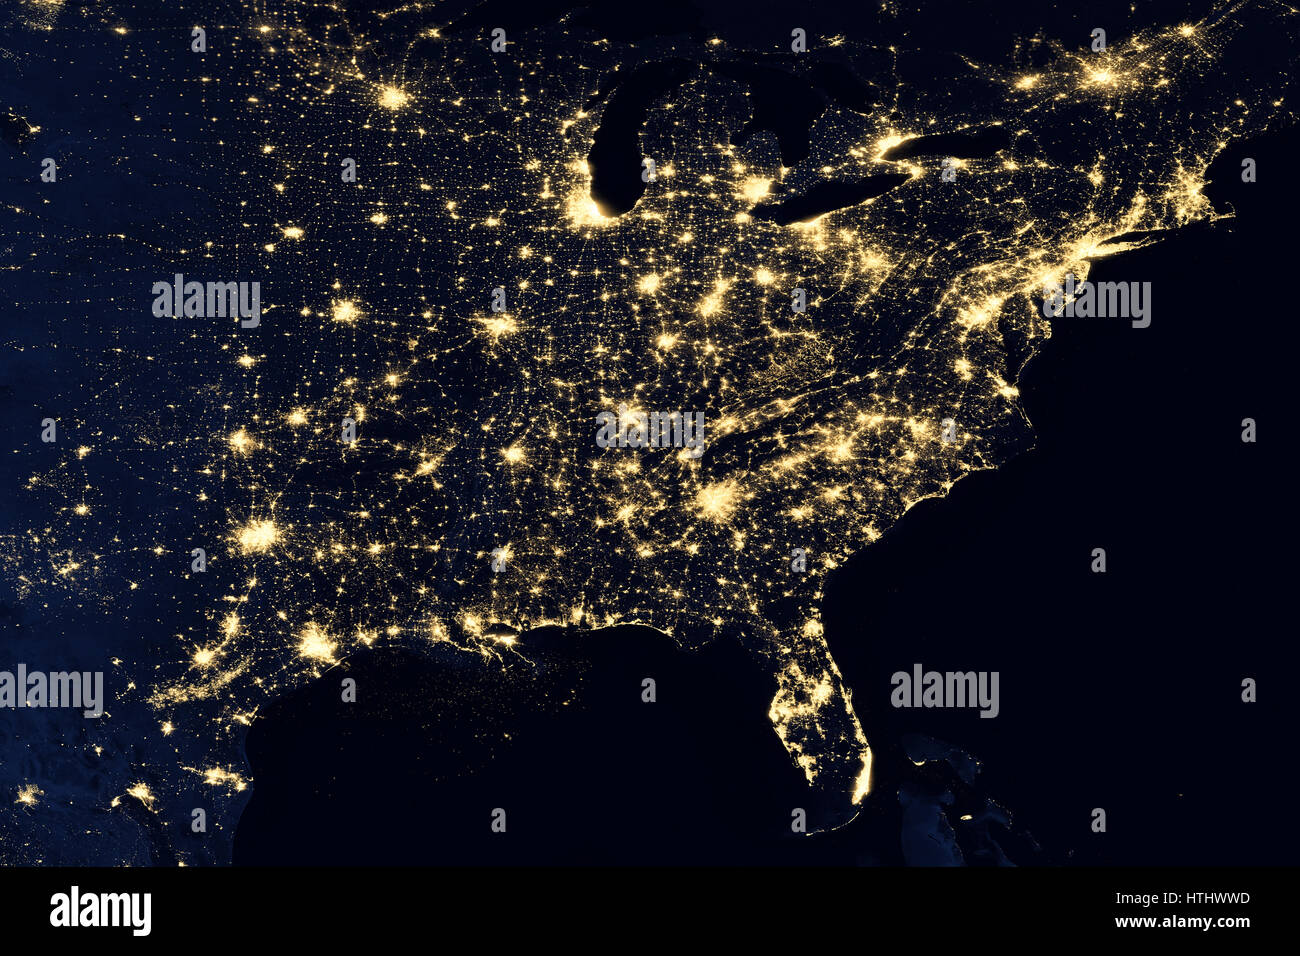 City lights on world map North America Elements of this image